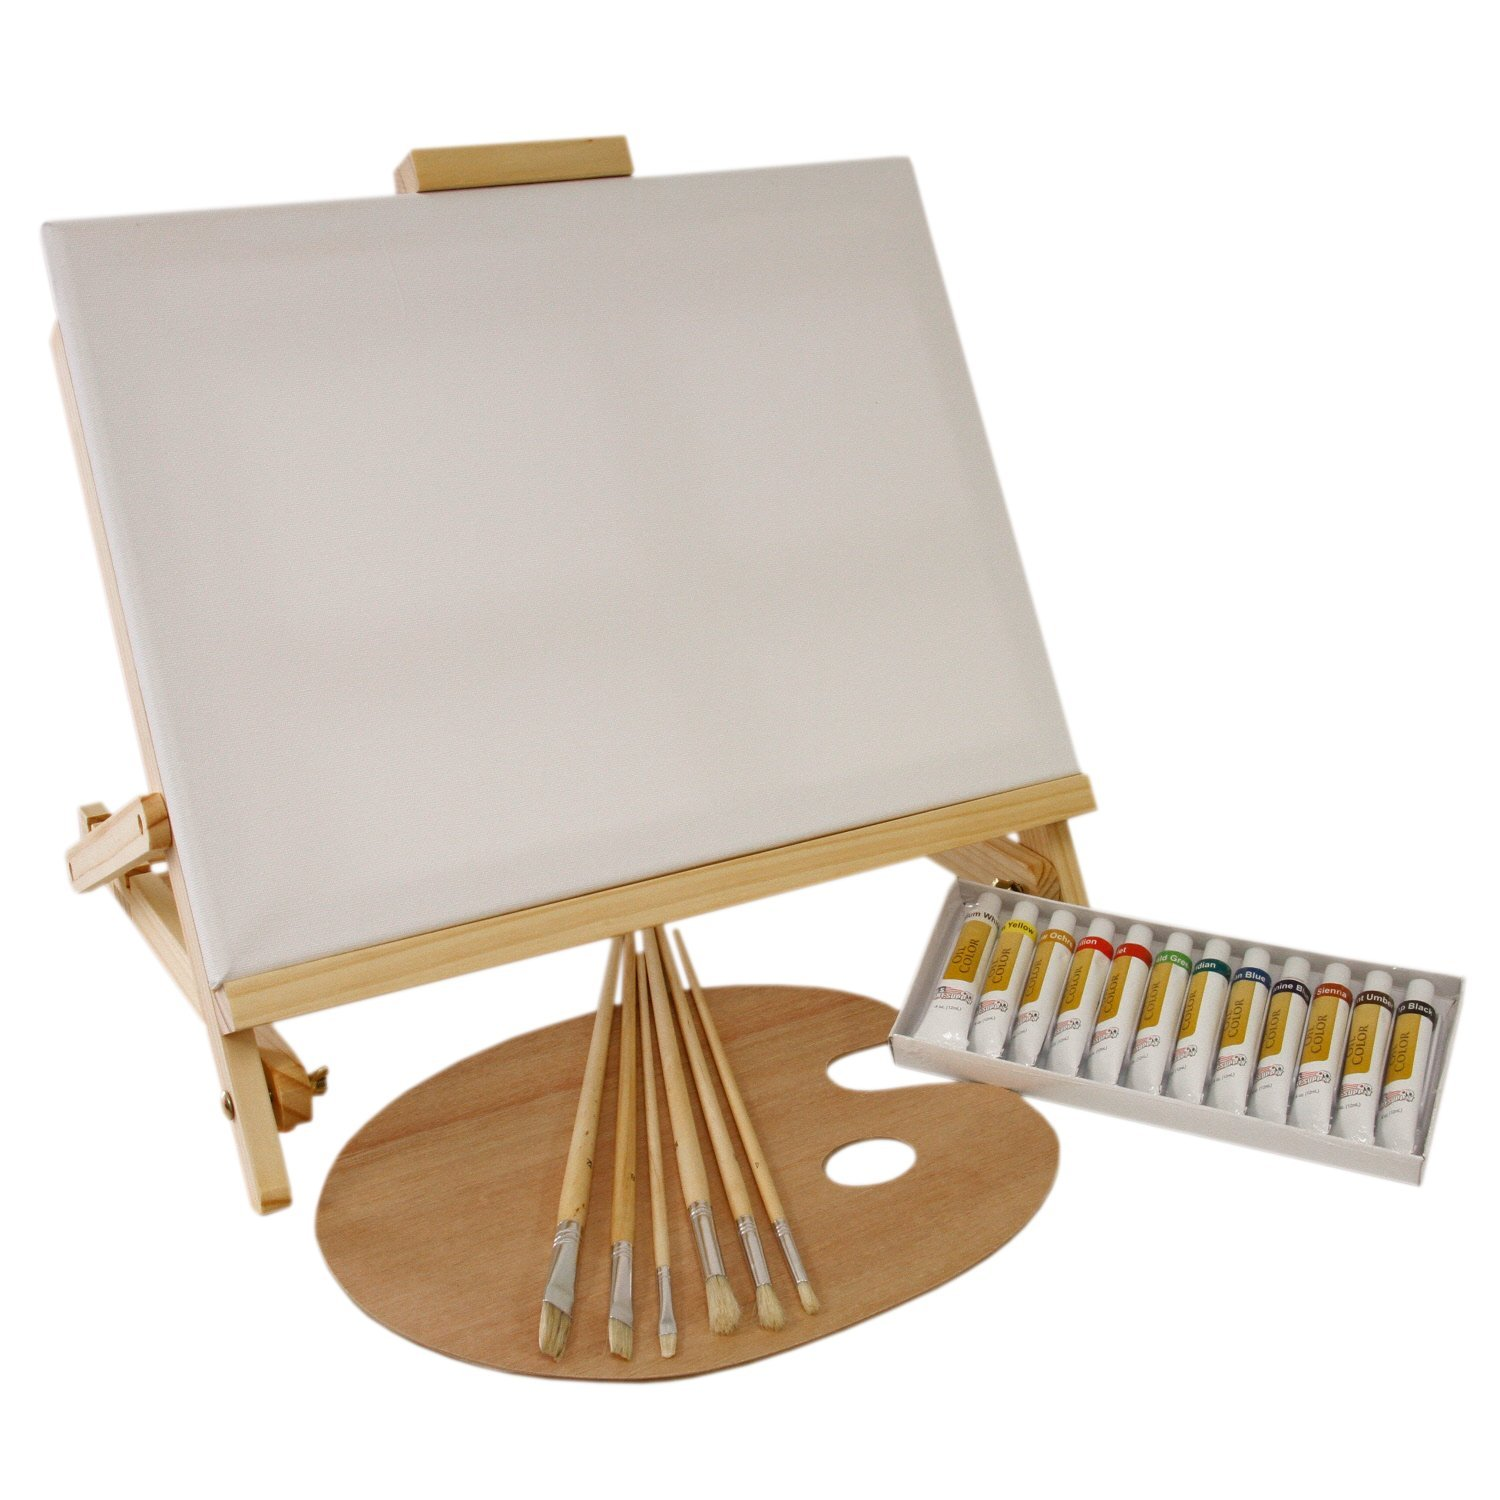 Painting set photo